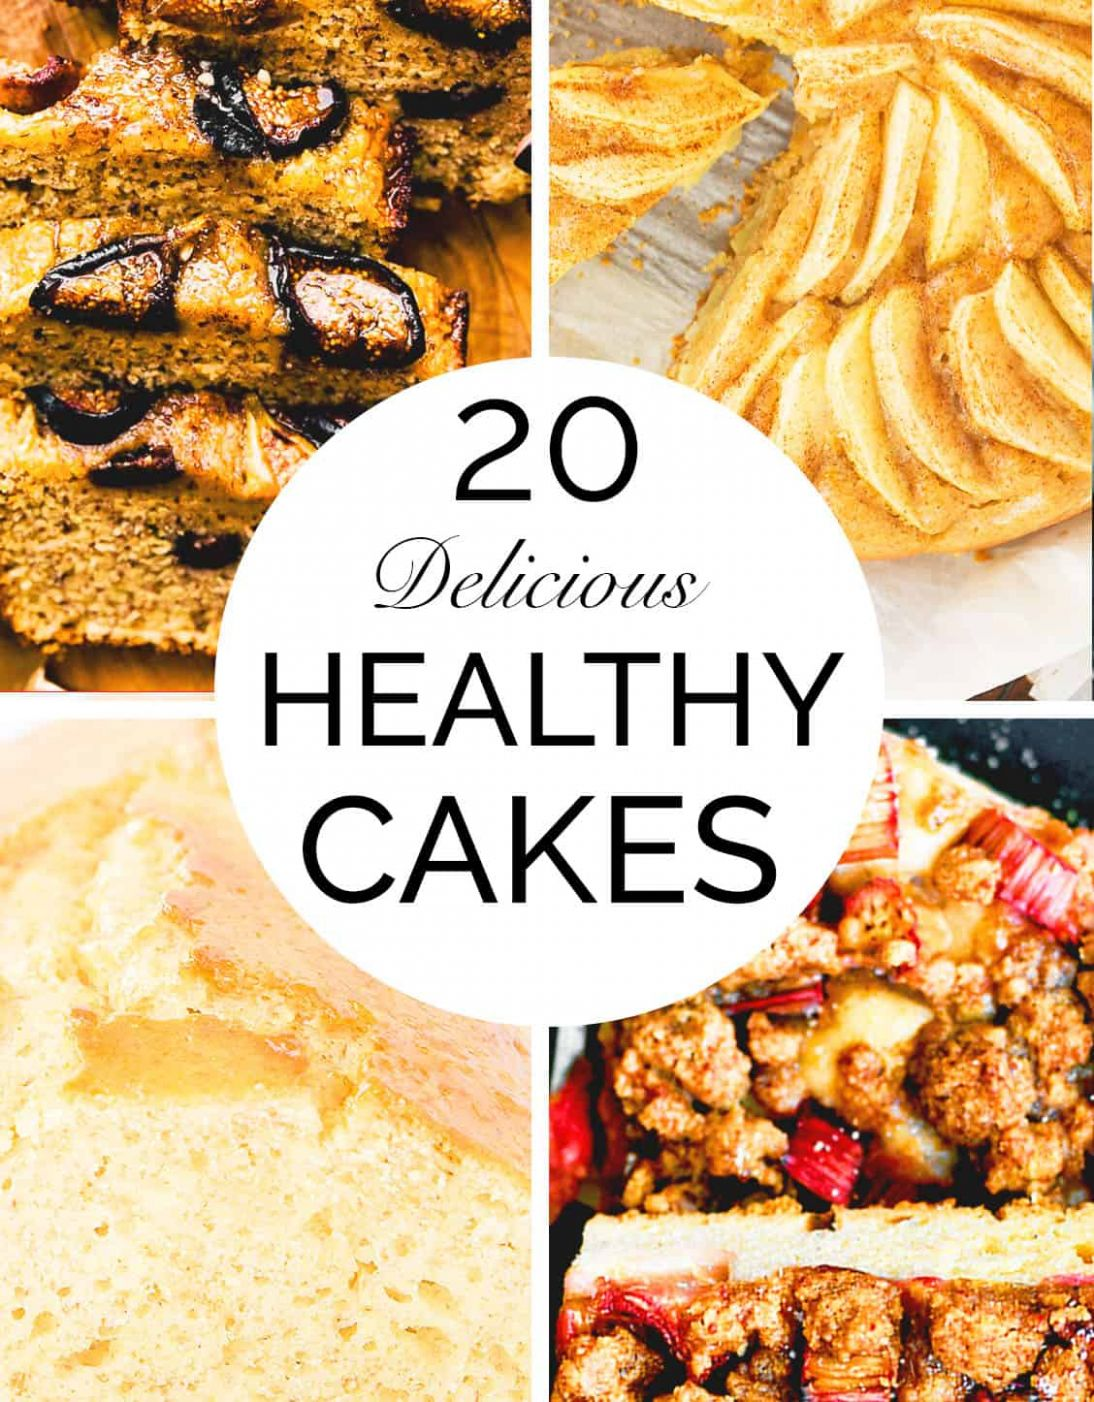 12 WHOLESOME & HEALTHY CAKE RECIPES - The clever meal - Healthy Recipes Cakes